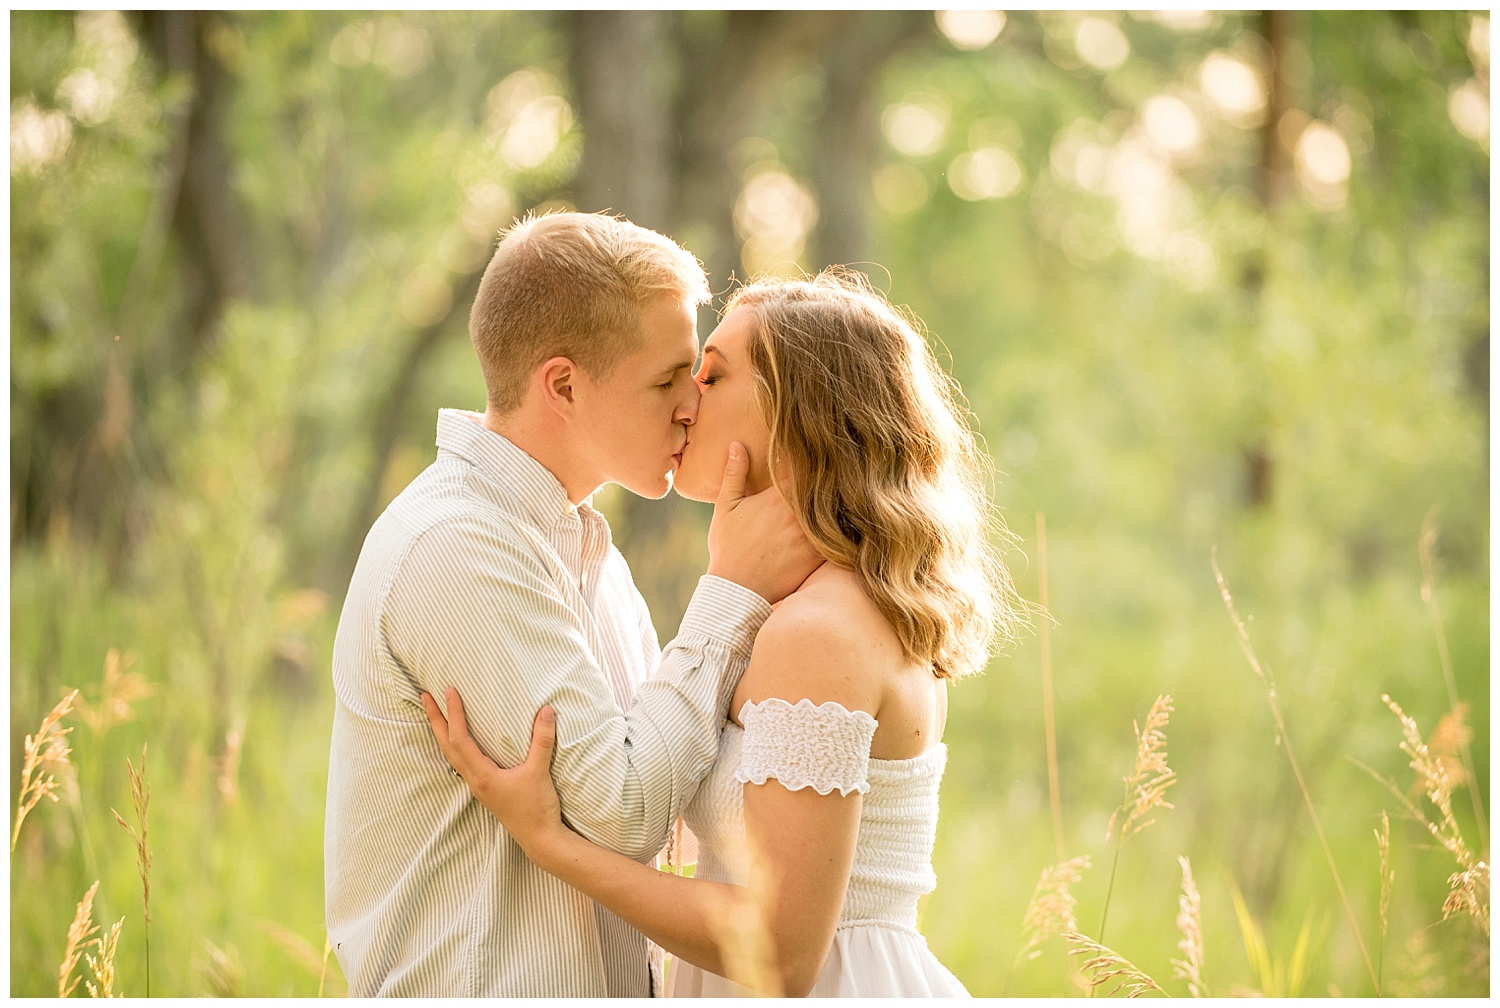 Young Couple Kissing in the Grass during Sunset | Clear Creek, Arvada, Colorado | Farm Wedding Photographer | Apollo Fields Wedding Photojournalism